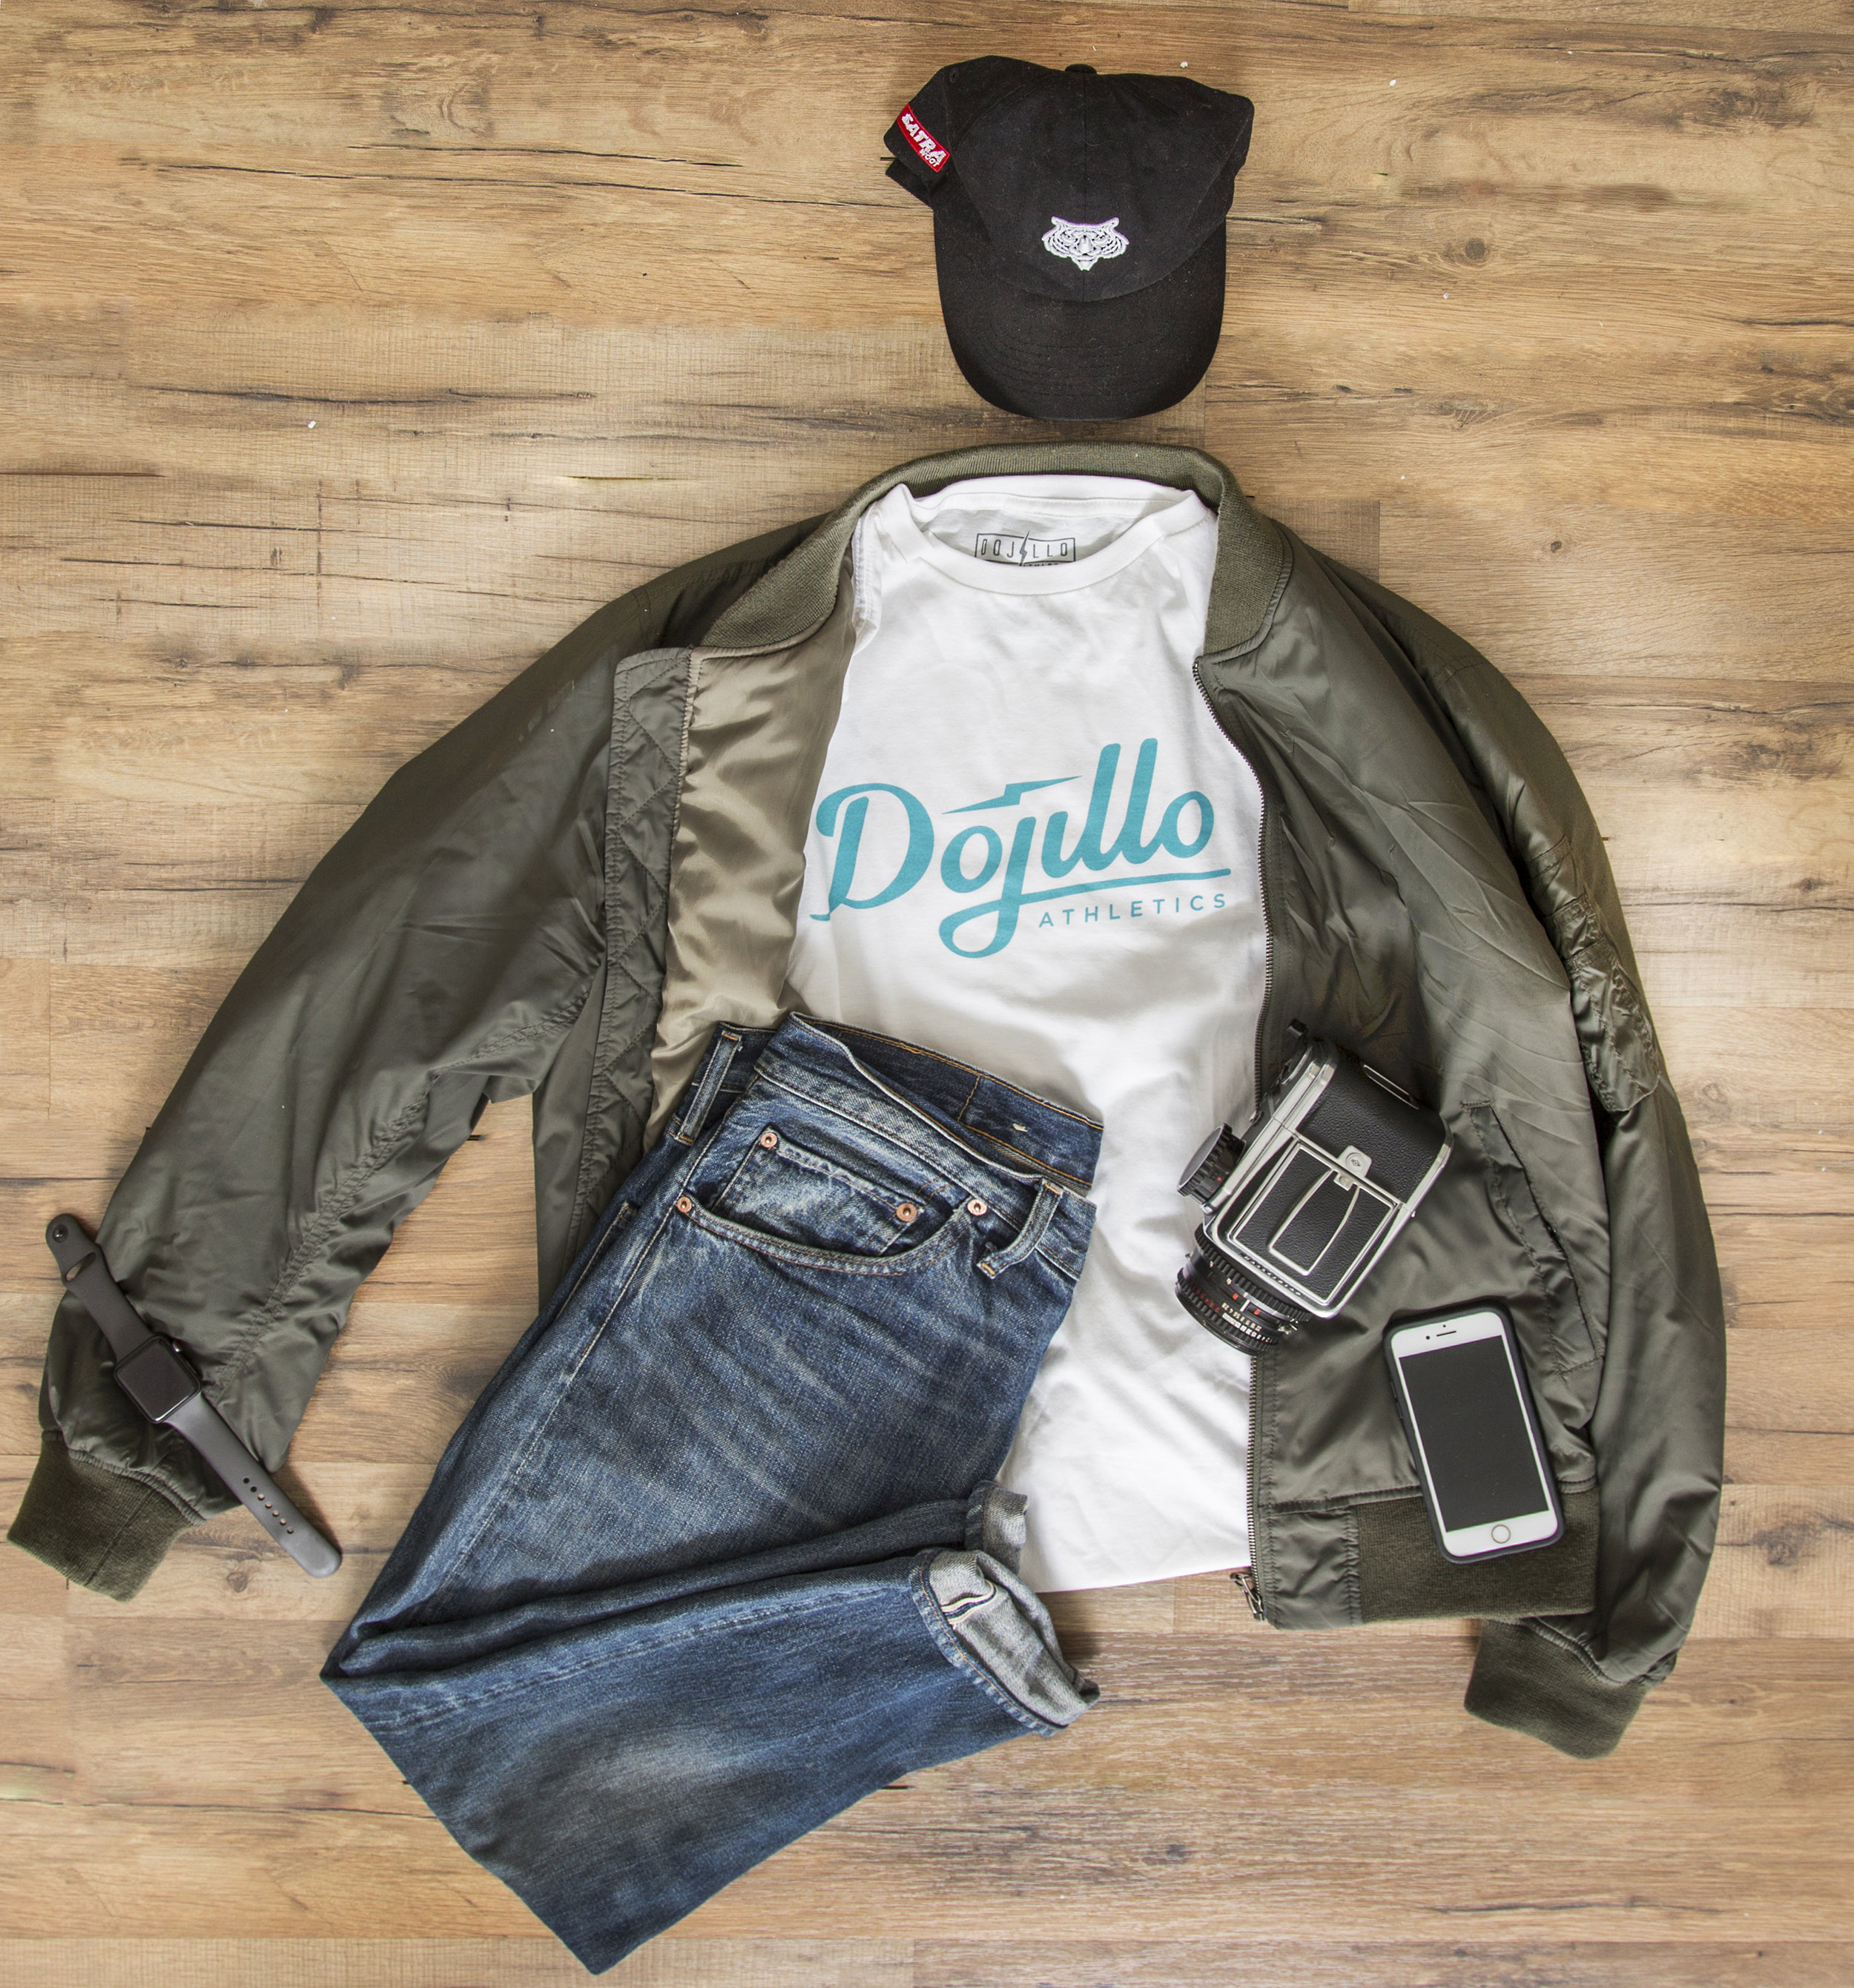 Every Day Carry * Green Bomber * Levi's Selvedge Denim * White DA Script Brand T-Shirt * Hasselblad 500c * I Phone * Apple Watch * A Bad Attitude